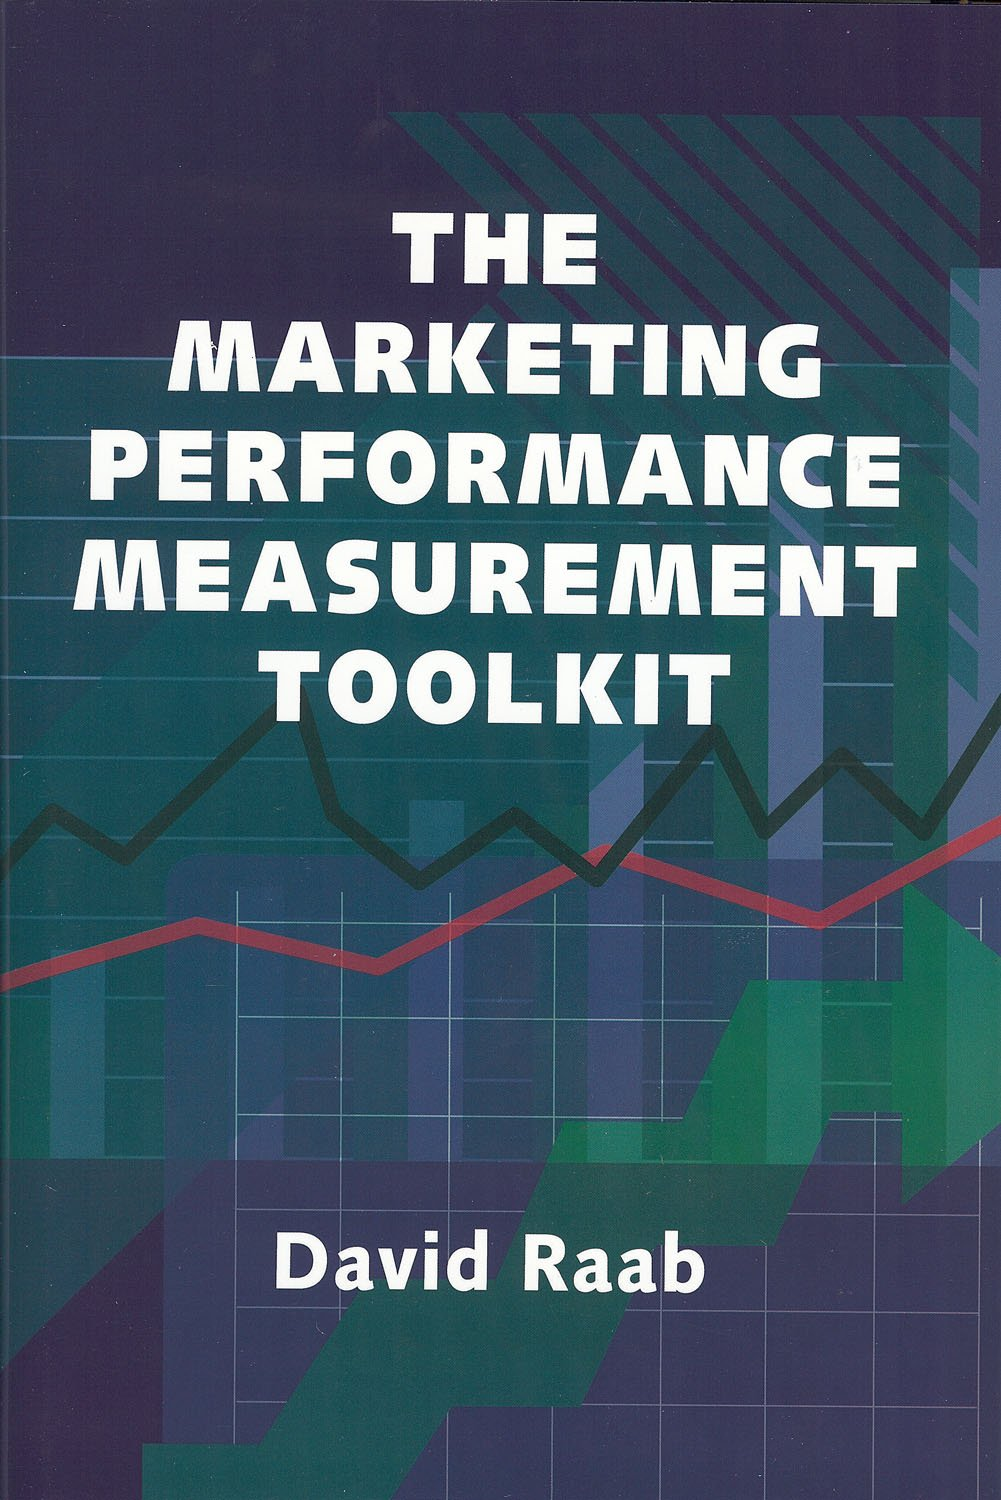 Marketing Performance Measurement Toolkit, The David Raab and Richard Hagle